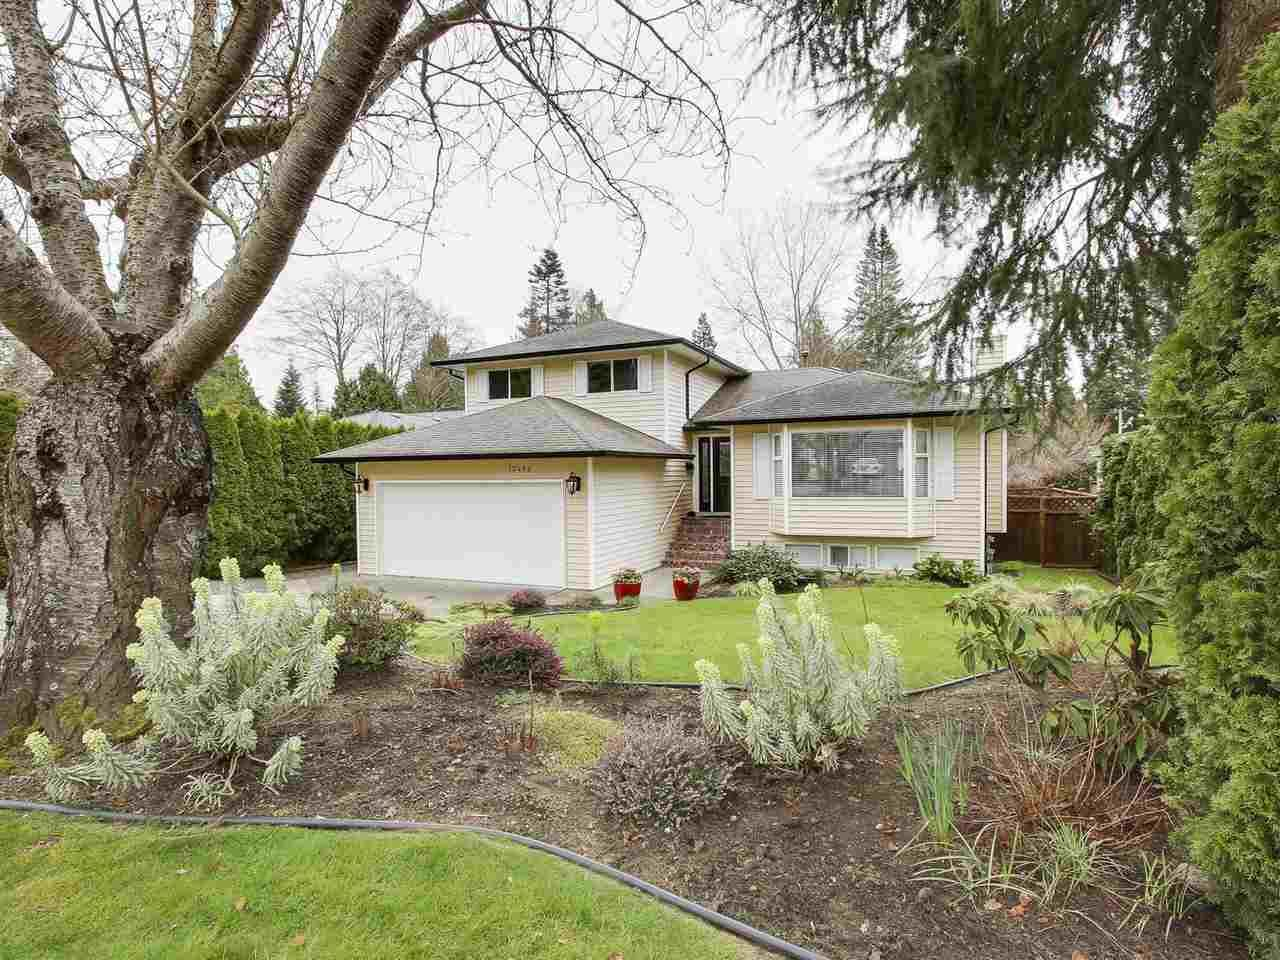 """Main Photo: 13496 15A Avenue in Surrey: Crescent Bch Ocean Pk. House for sale in """"Marine Terrace"""" (South Surrey White Rock)  : MLS®# R2152319"""